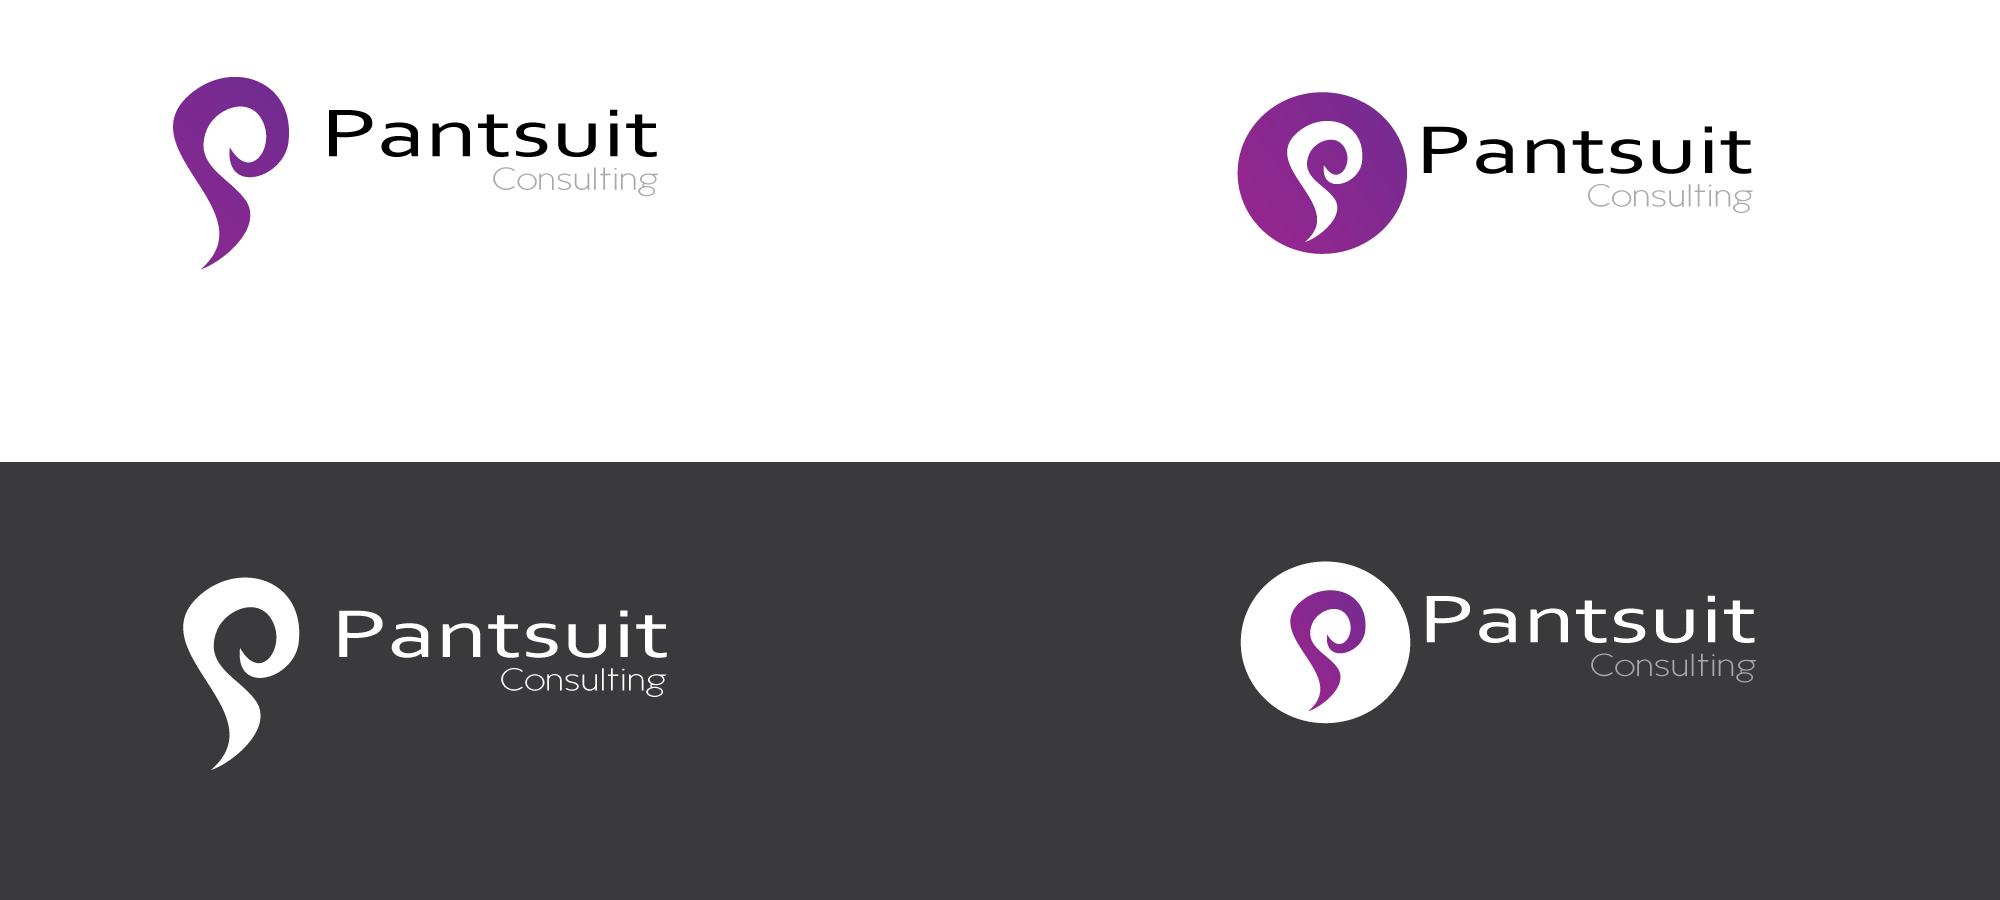 Help Pantsuit Consulting with a new logo